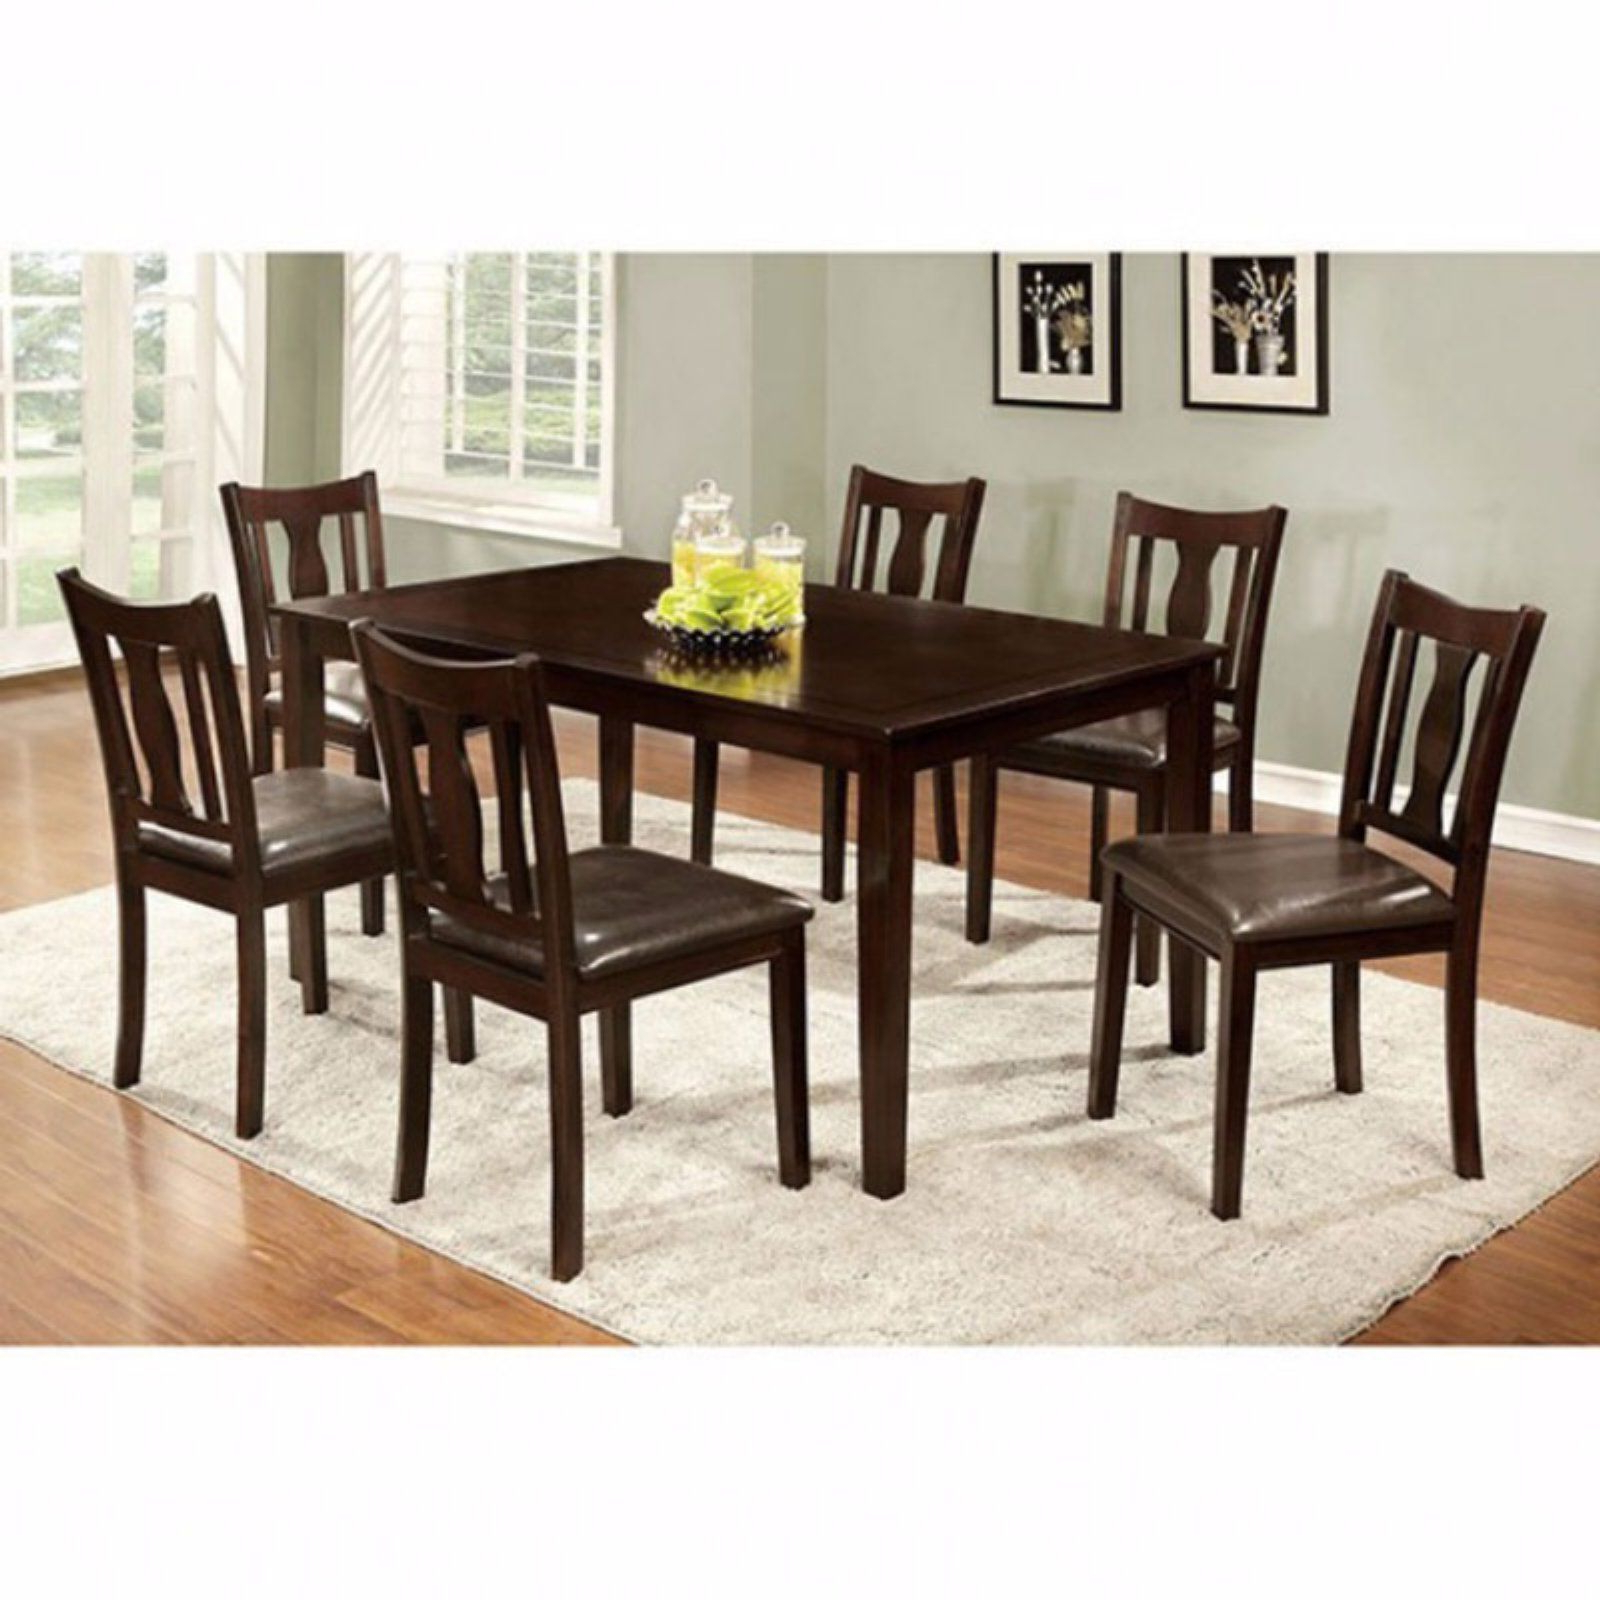 Widely Used Benzara 7 Piece Rectangular Faux Leather Dining Table Set In Inside Atwood Transitional Rectangular Dining Tables (View 9 of 25)